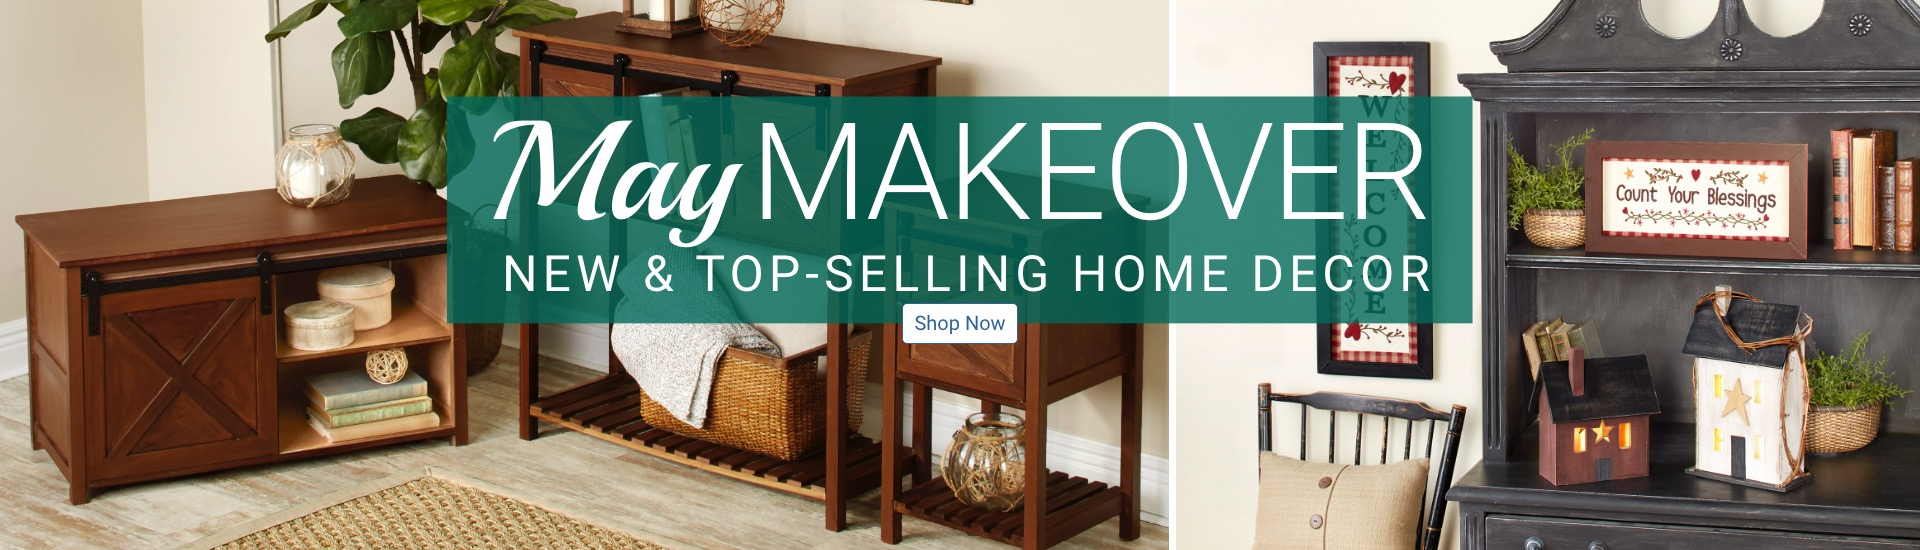 May Makeover New and Top-Selling Home Decor Shop Now